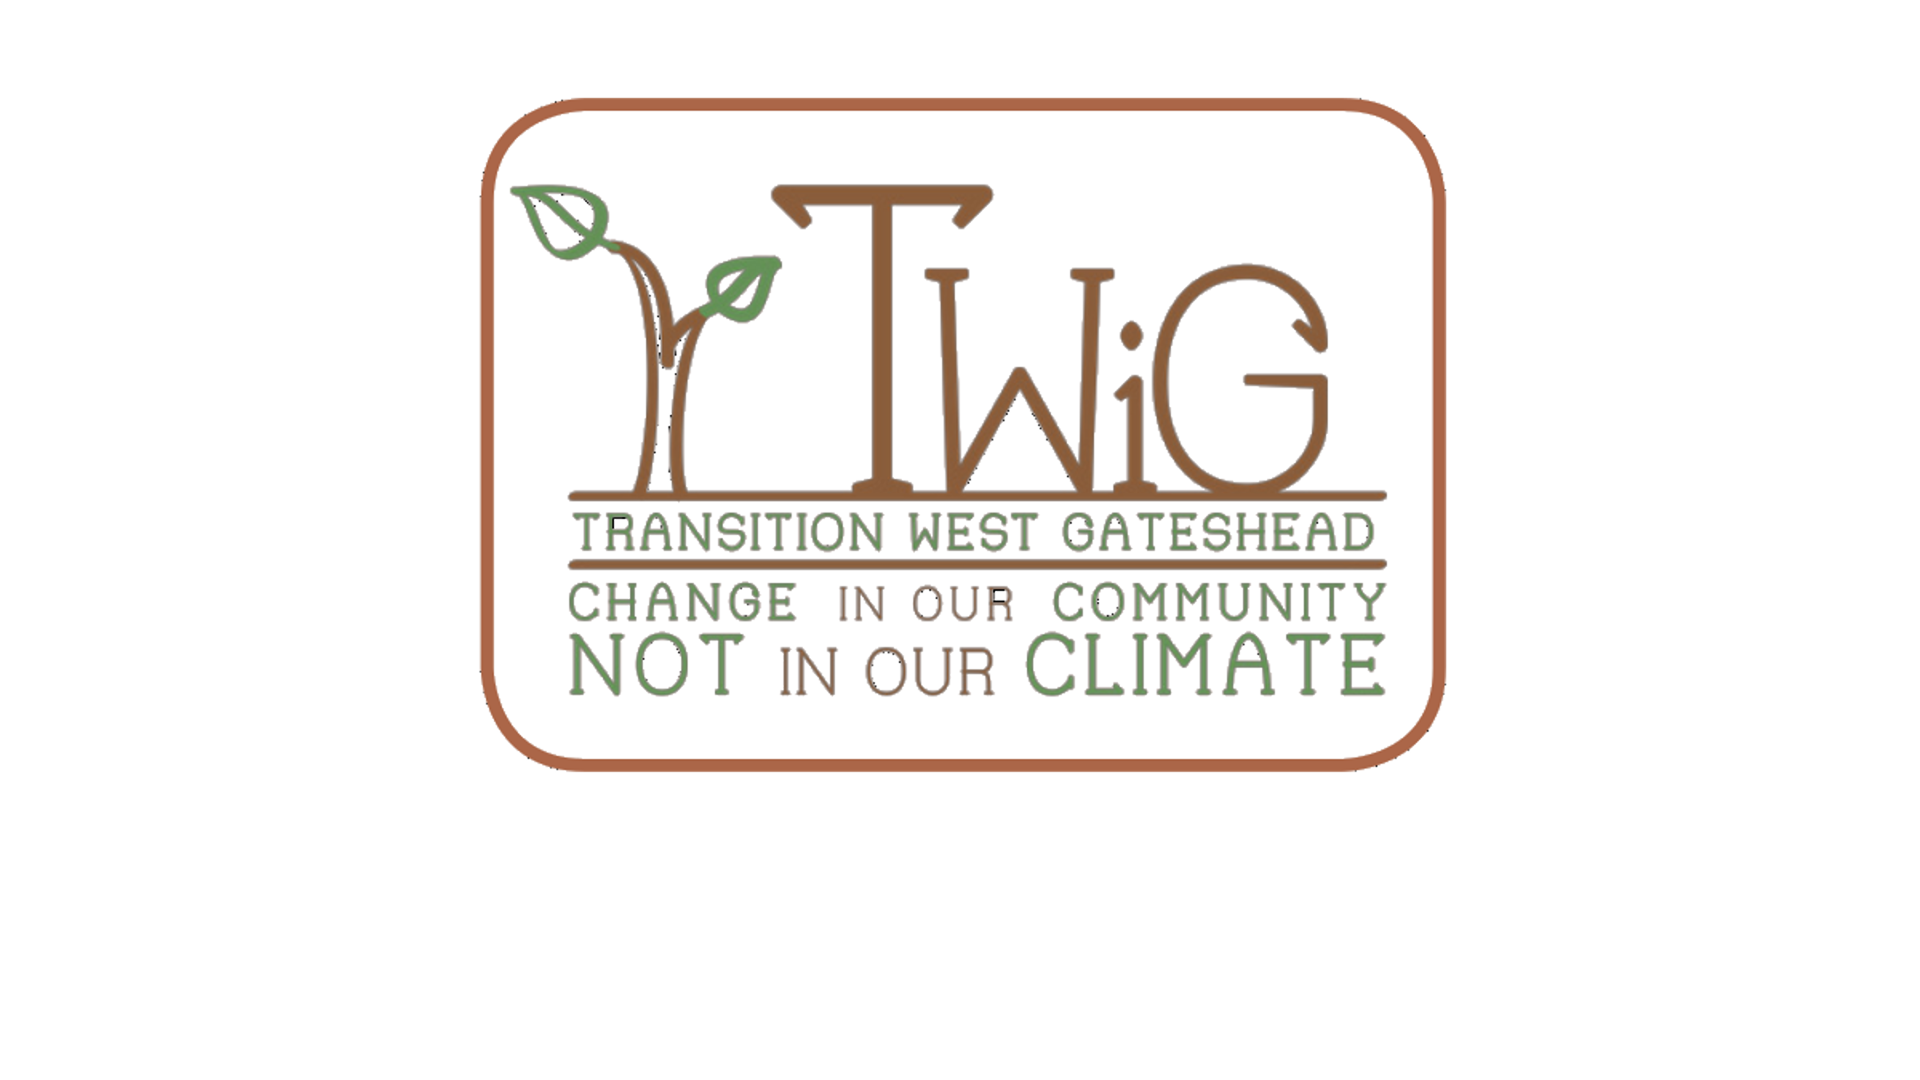 Transition West Gateshead